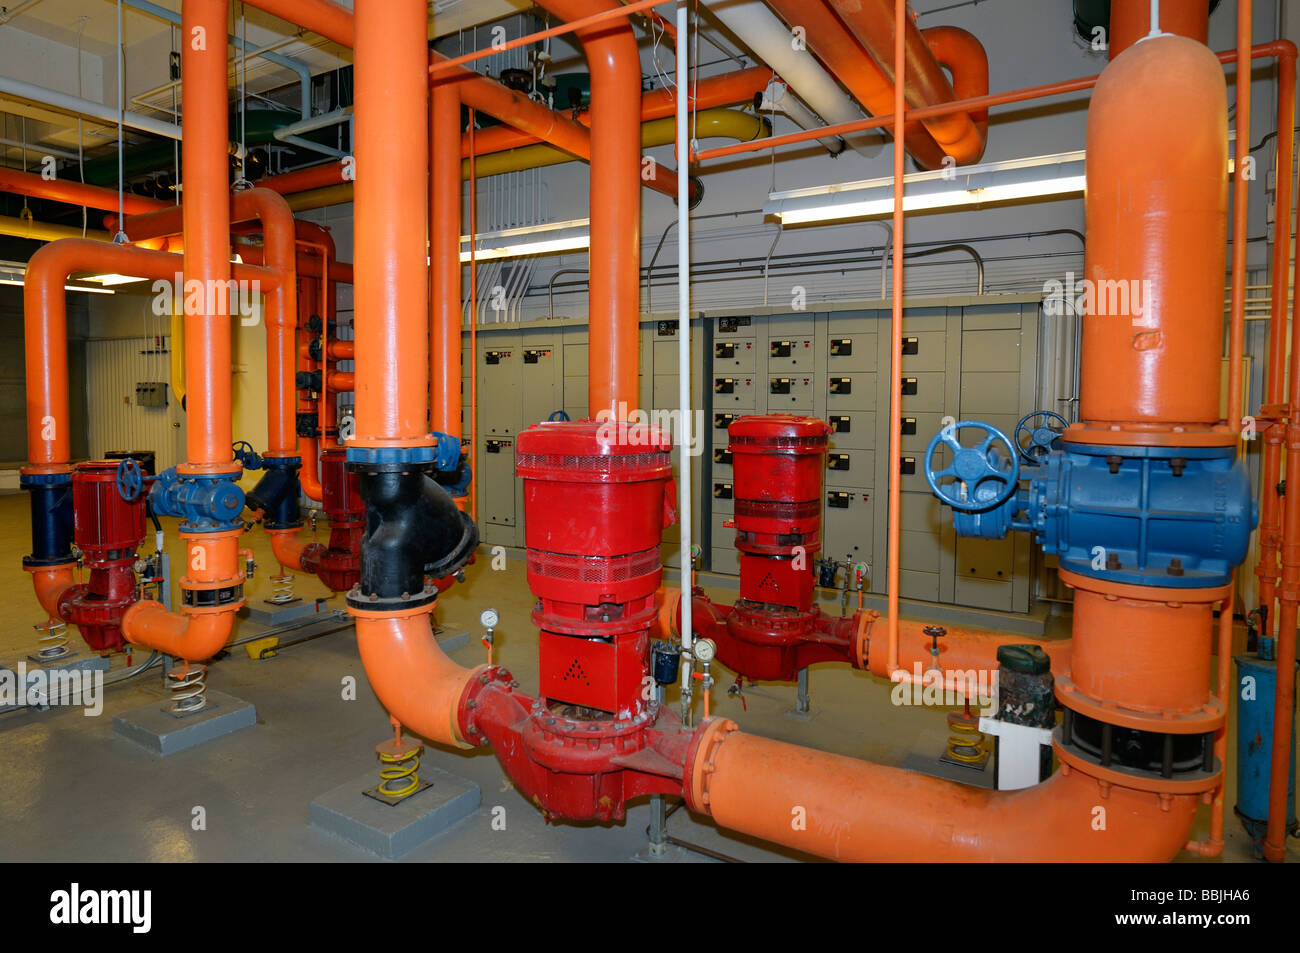 Electrical heating control and orange water pipes in the boiler room of a highrise office building Toronto - Stock Image